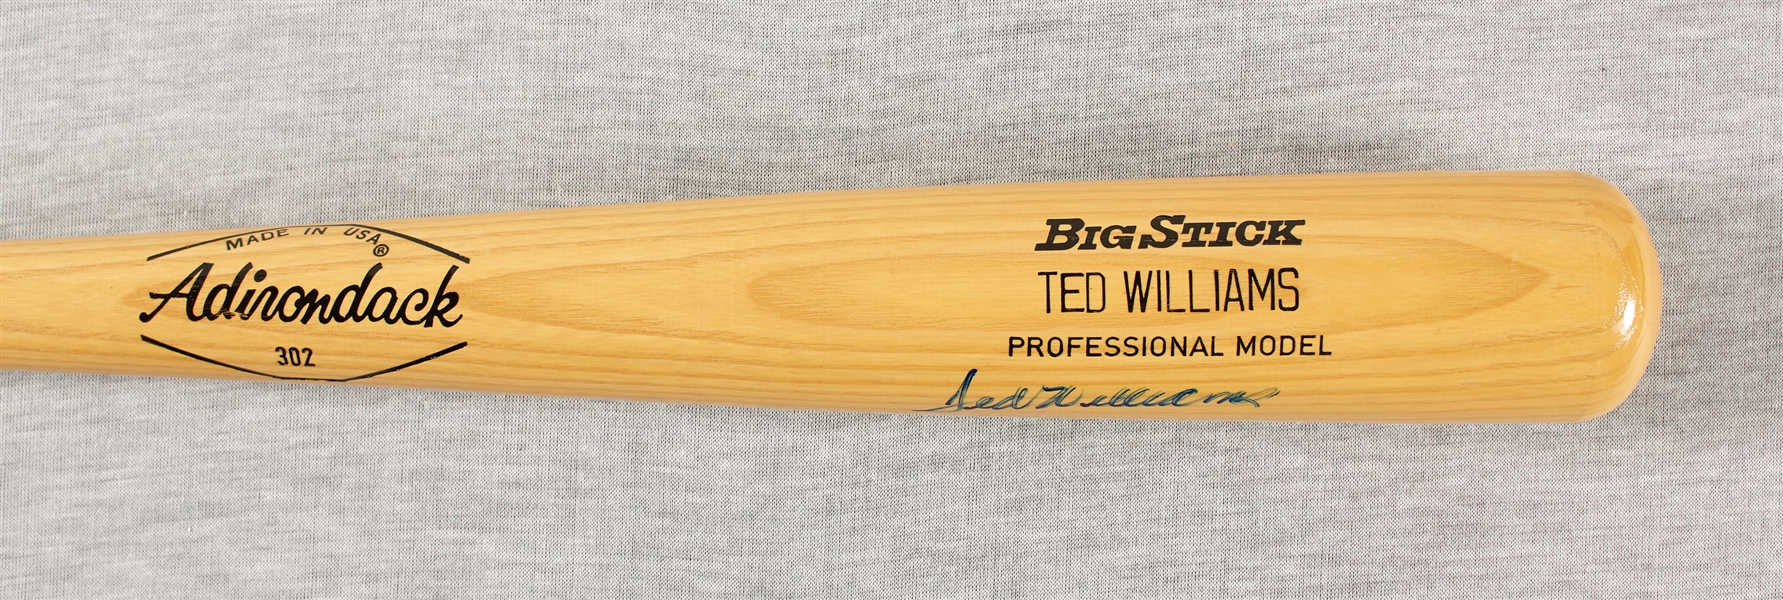 Ted Williams Signed Rawlings Bat (PSA/DNA)